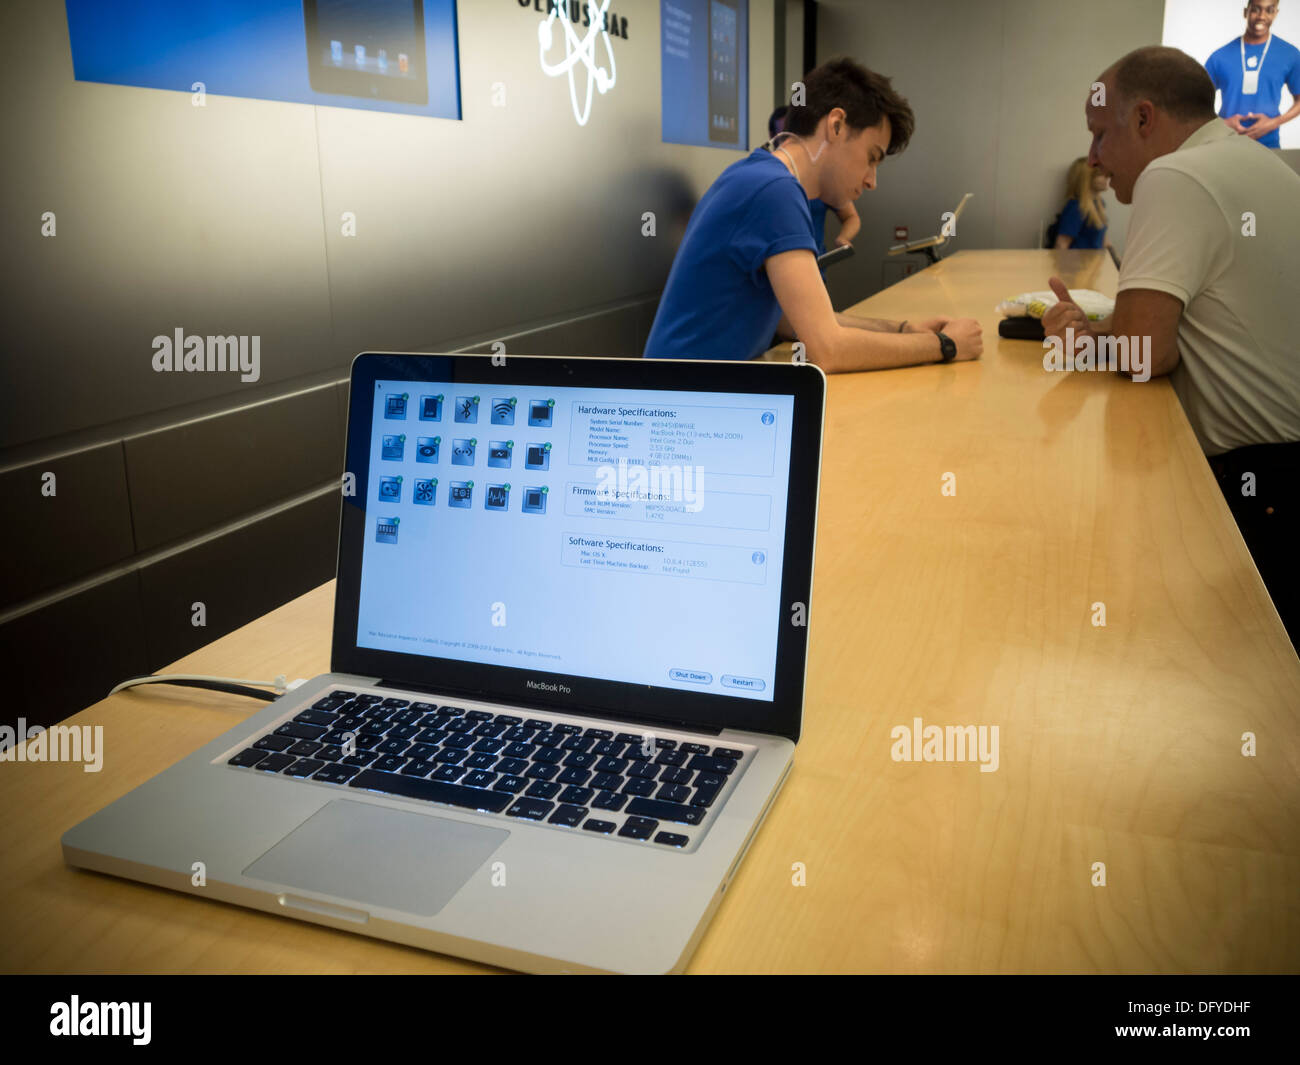 How to Make a Genius Bar Appointment from Your iPhone or iPad